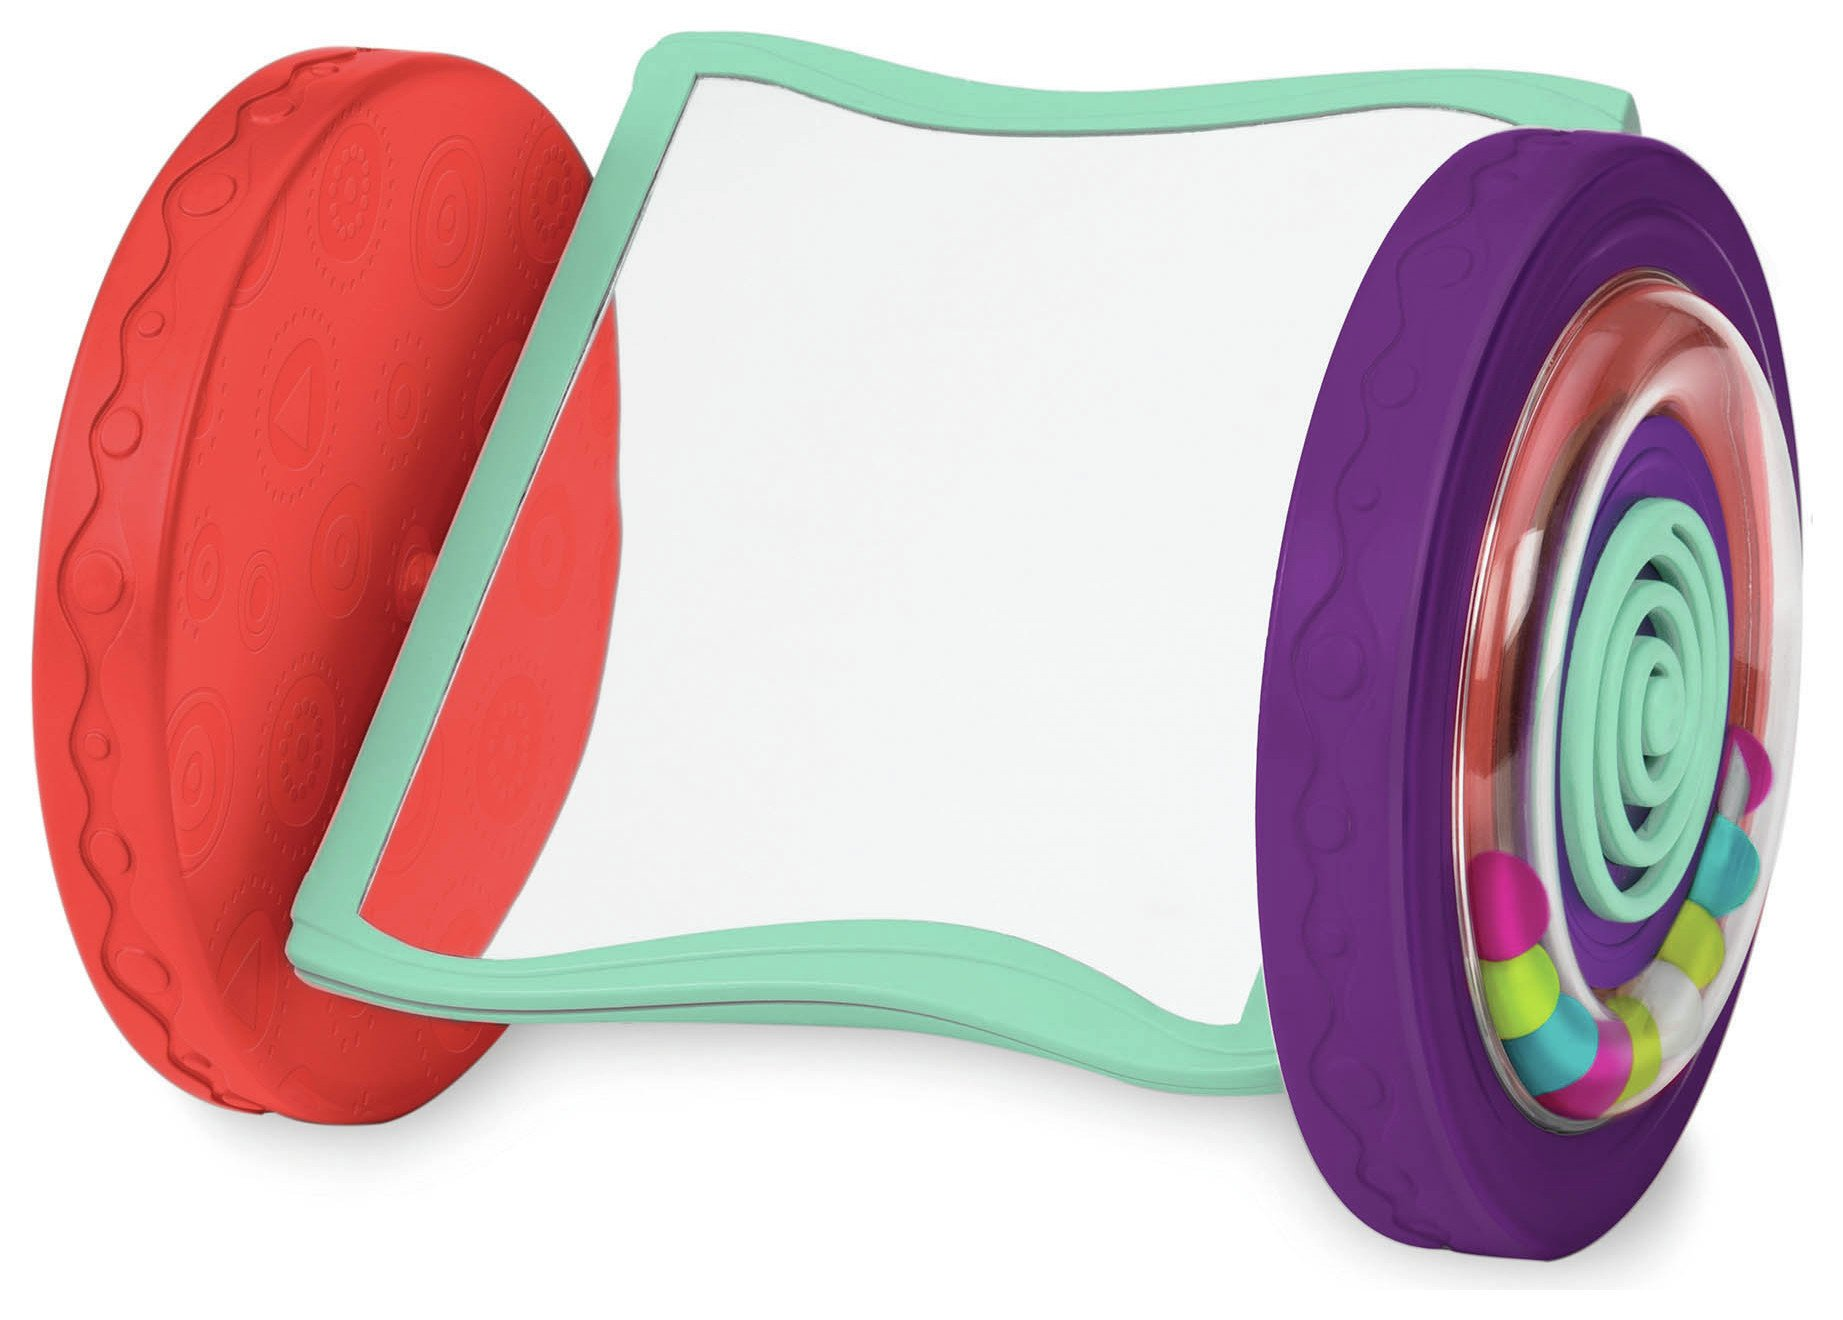 Image of B Baby Looky-Looky Activity Toy.